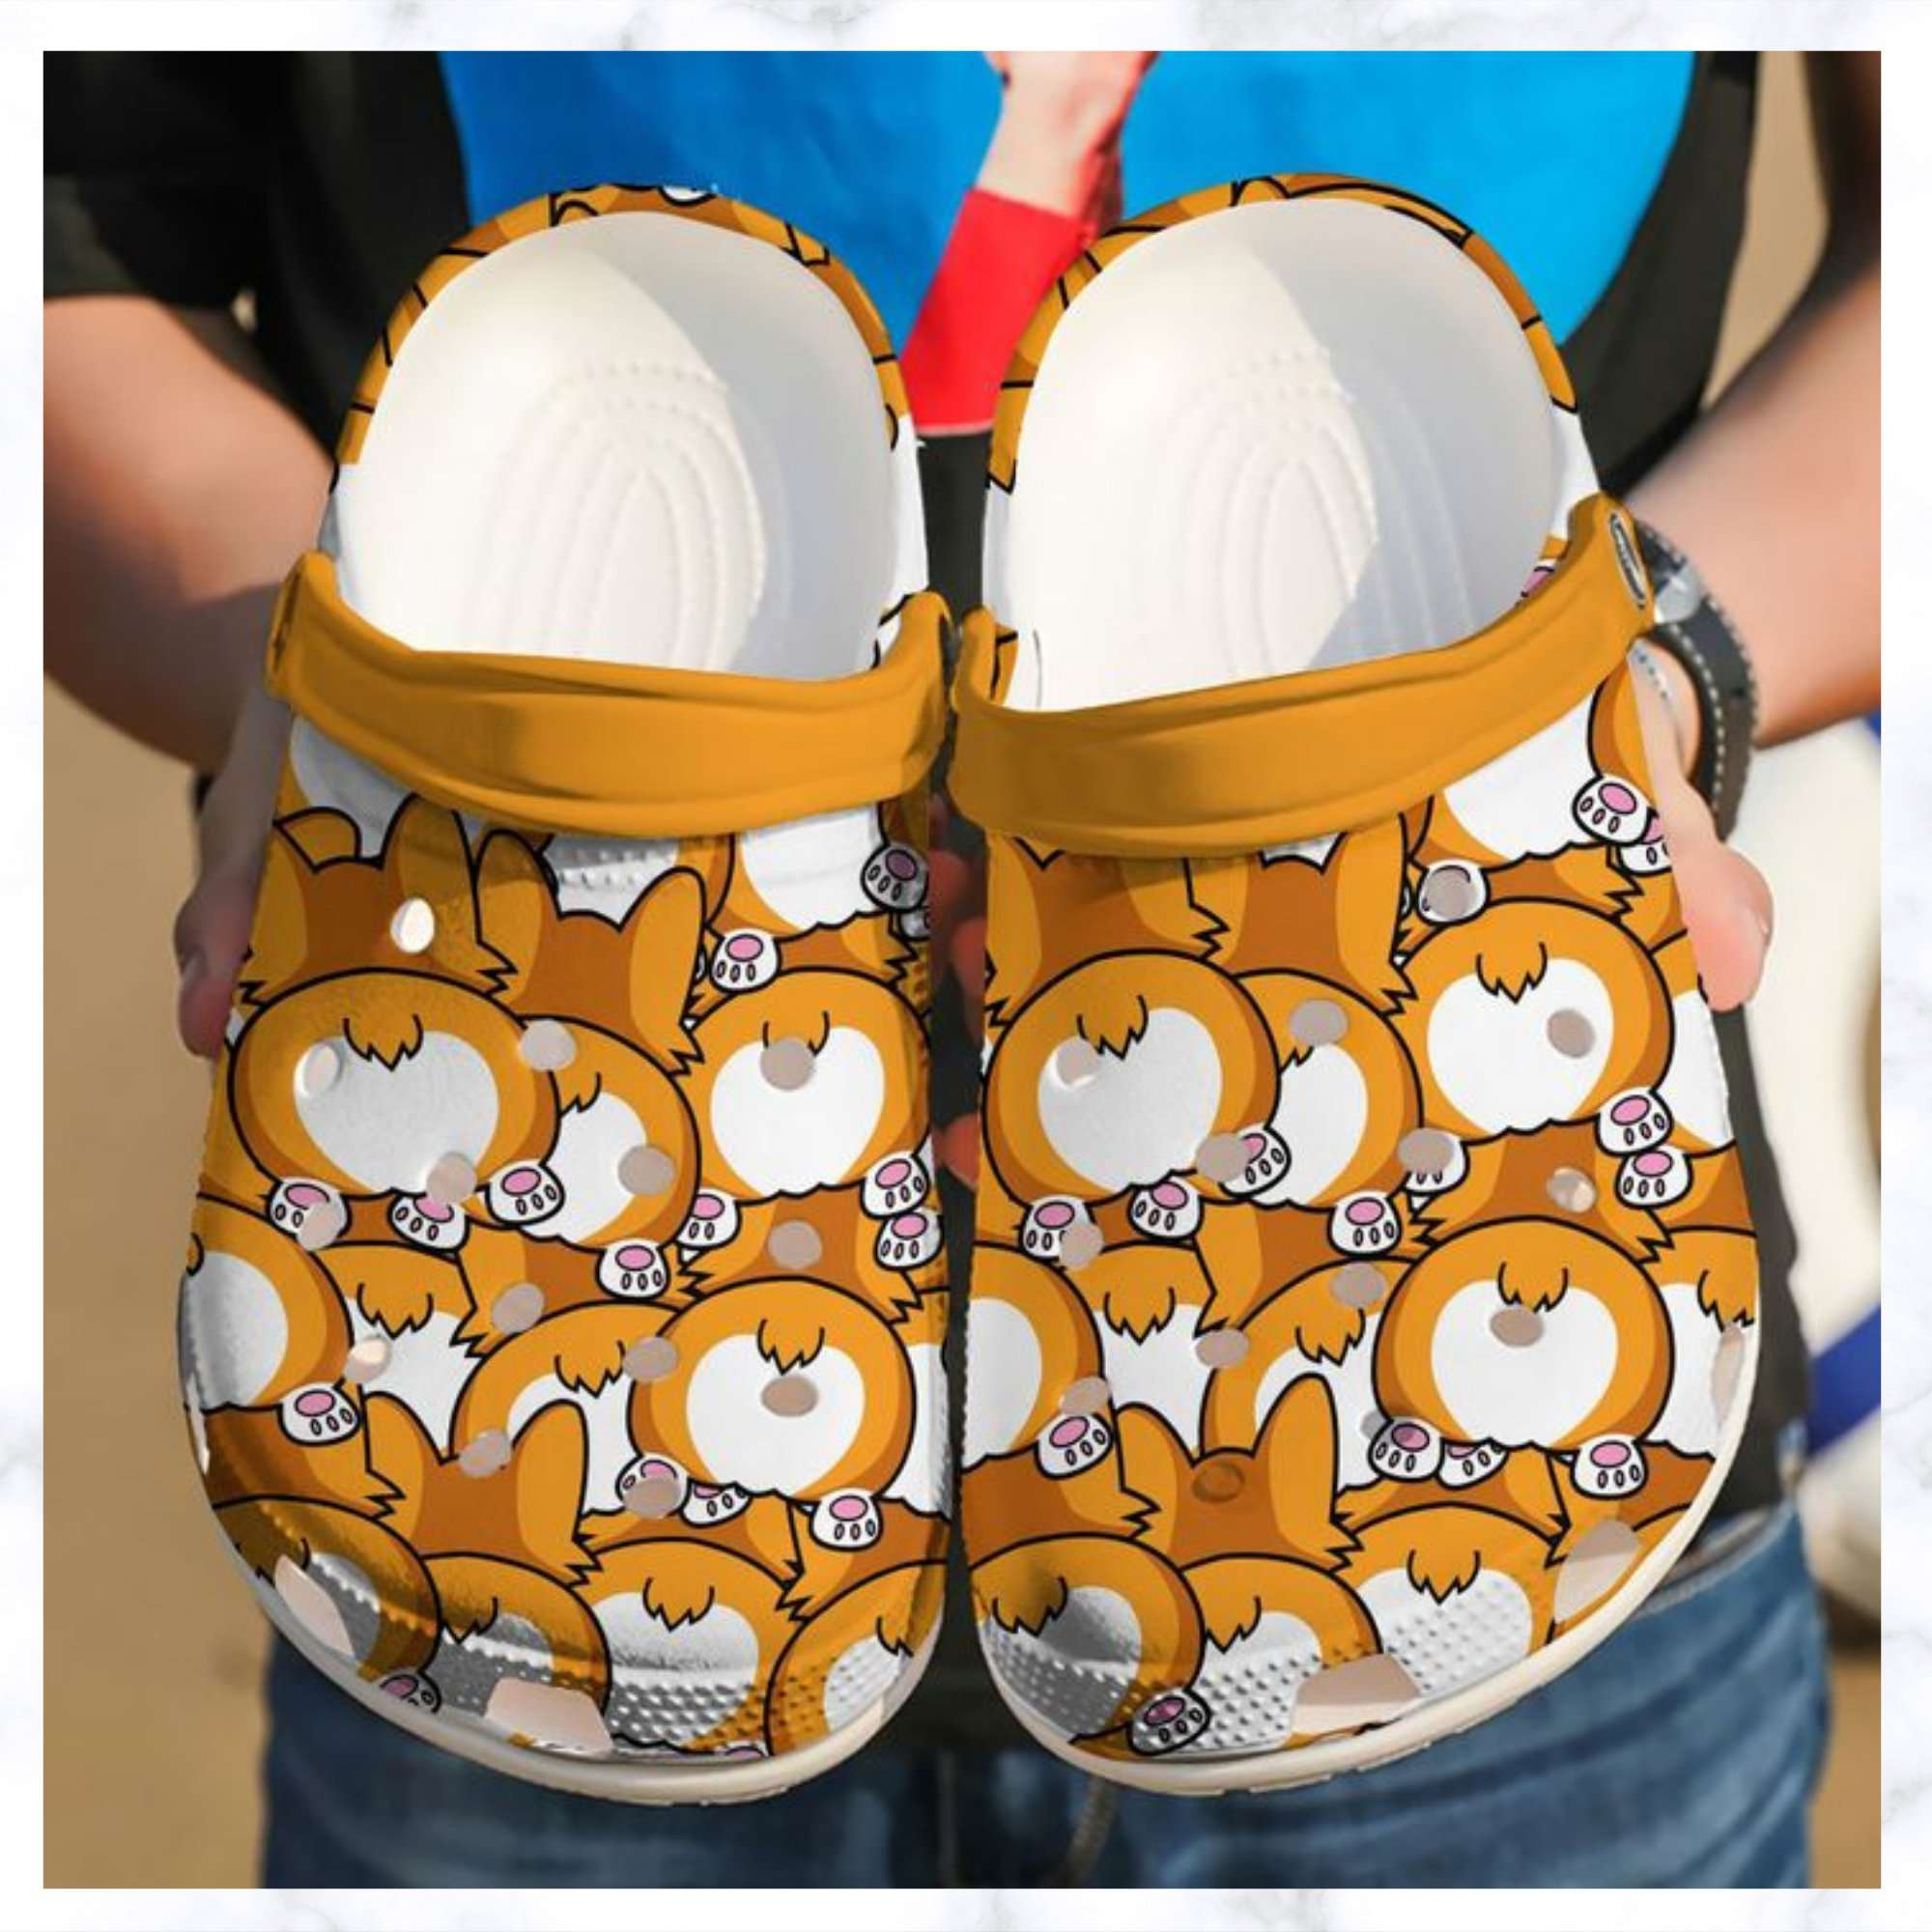 Corgi Butts Crocs Clog Shoes